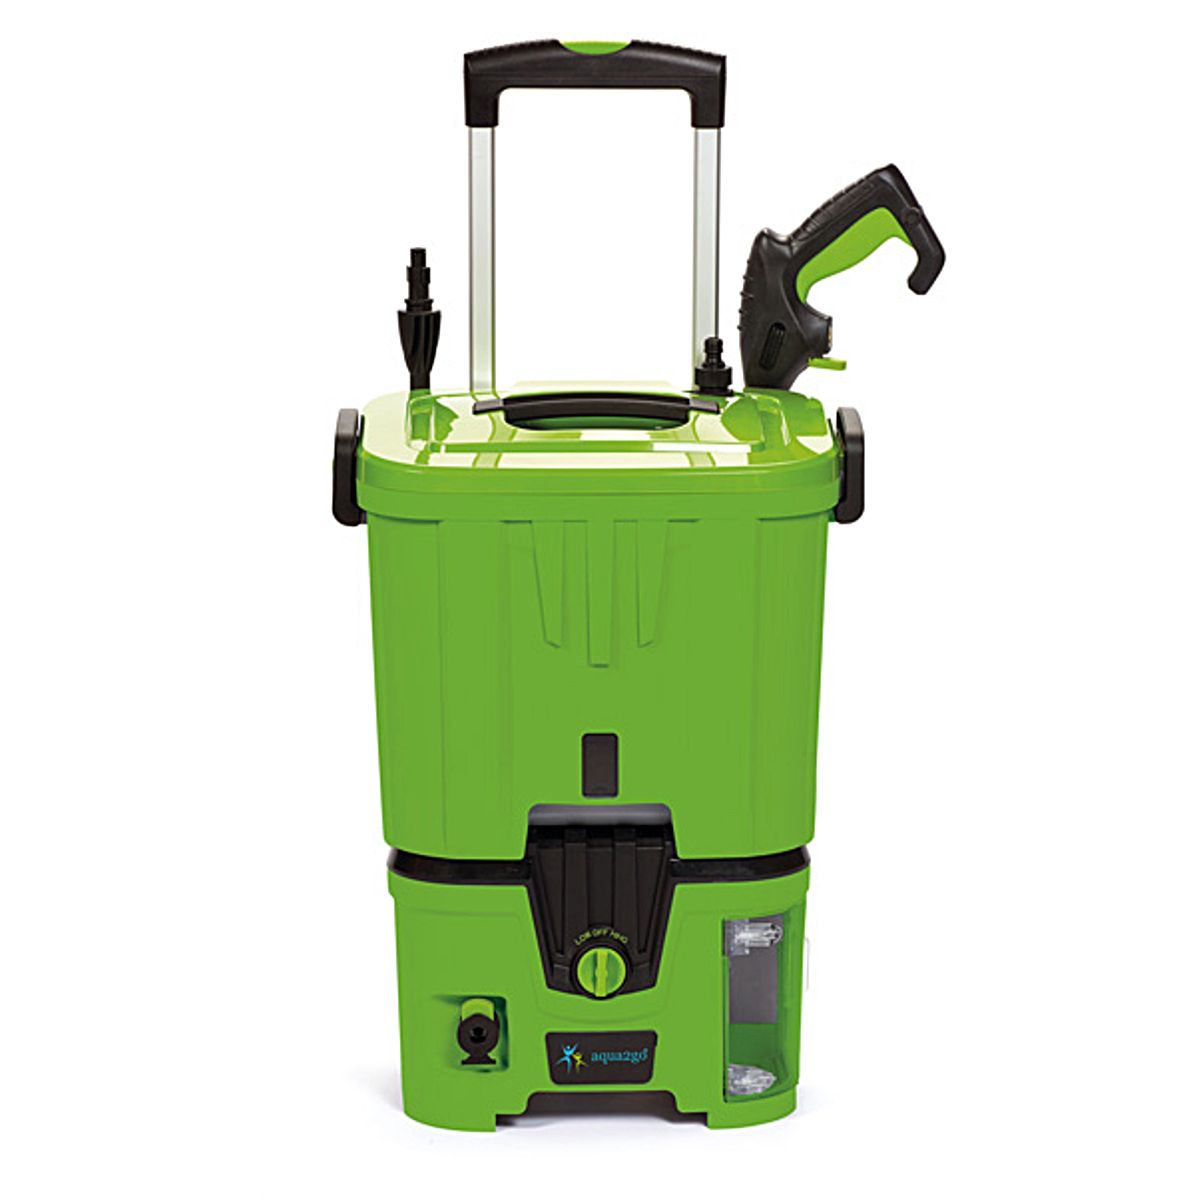 aqua2go Kross Battery High Pressure Cleaner | Computer Battery and Charger